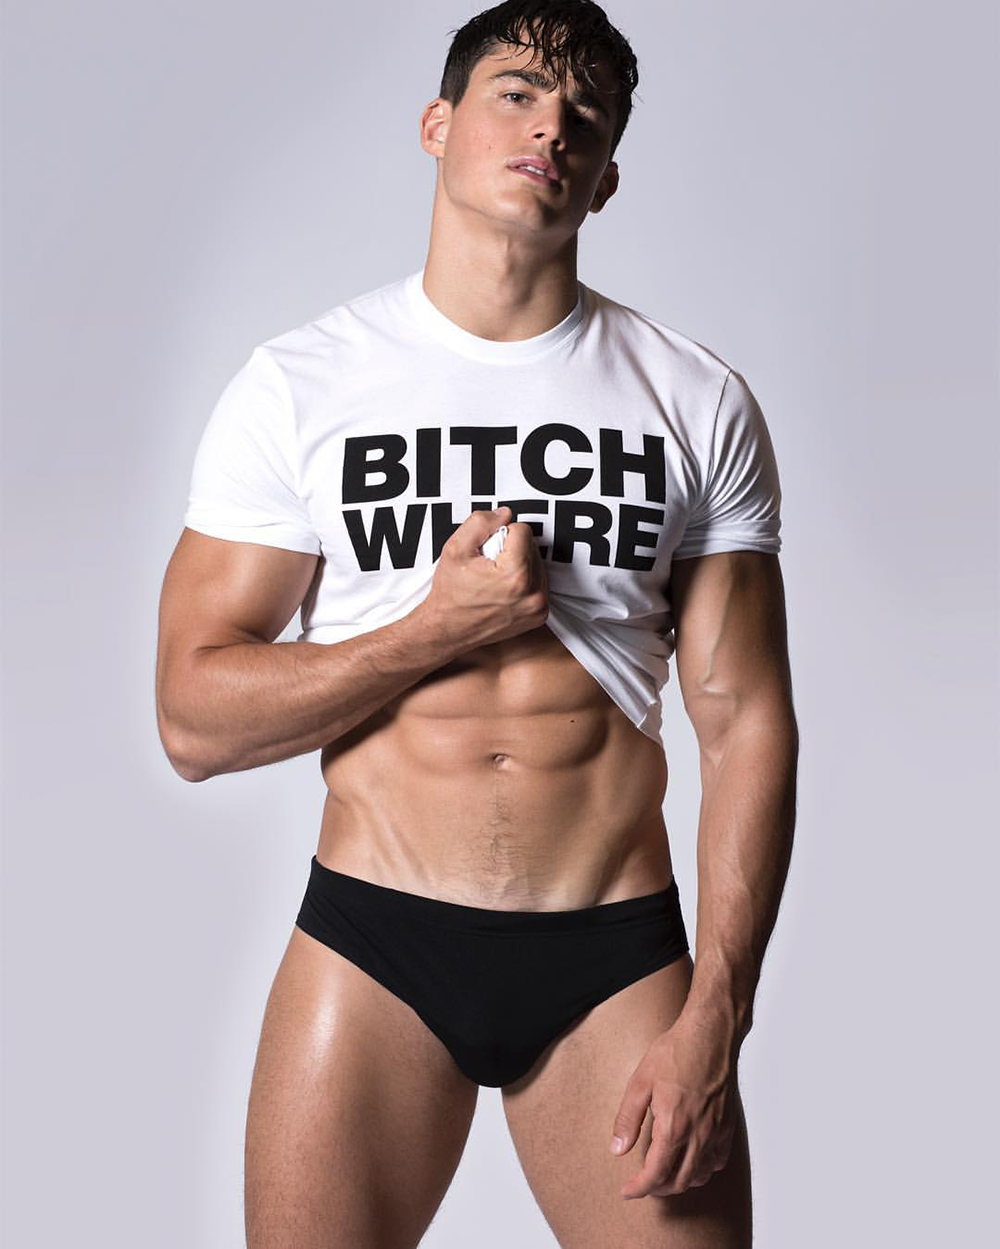 Pietro Boselli models Dsquared2's funny 'Bitch Where' collection